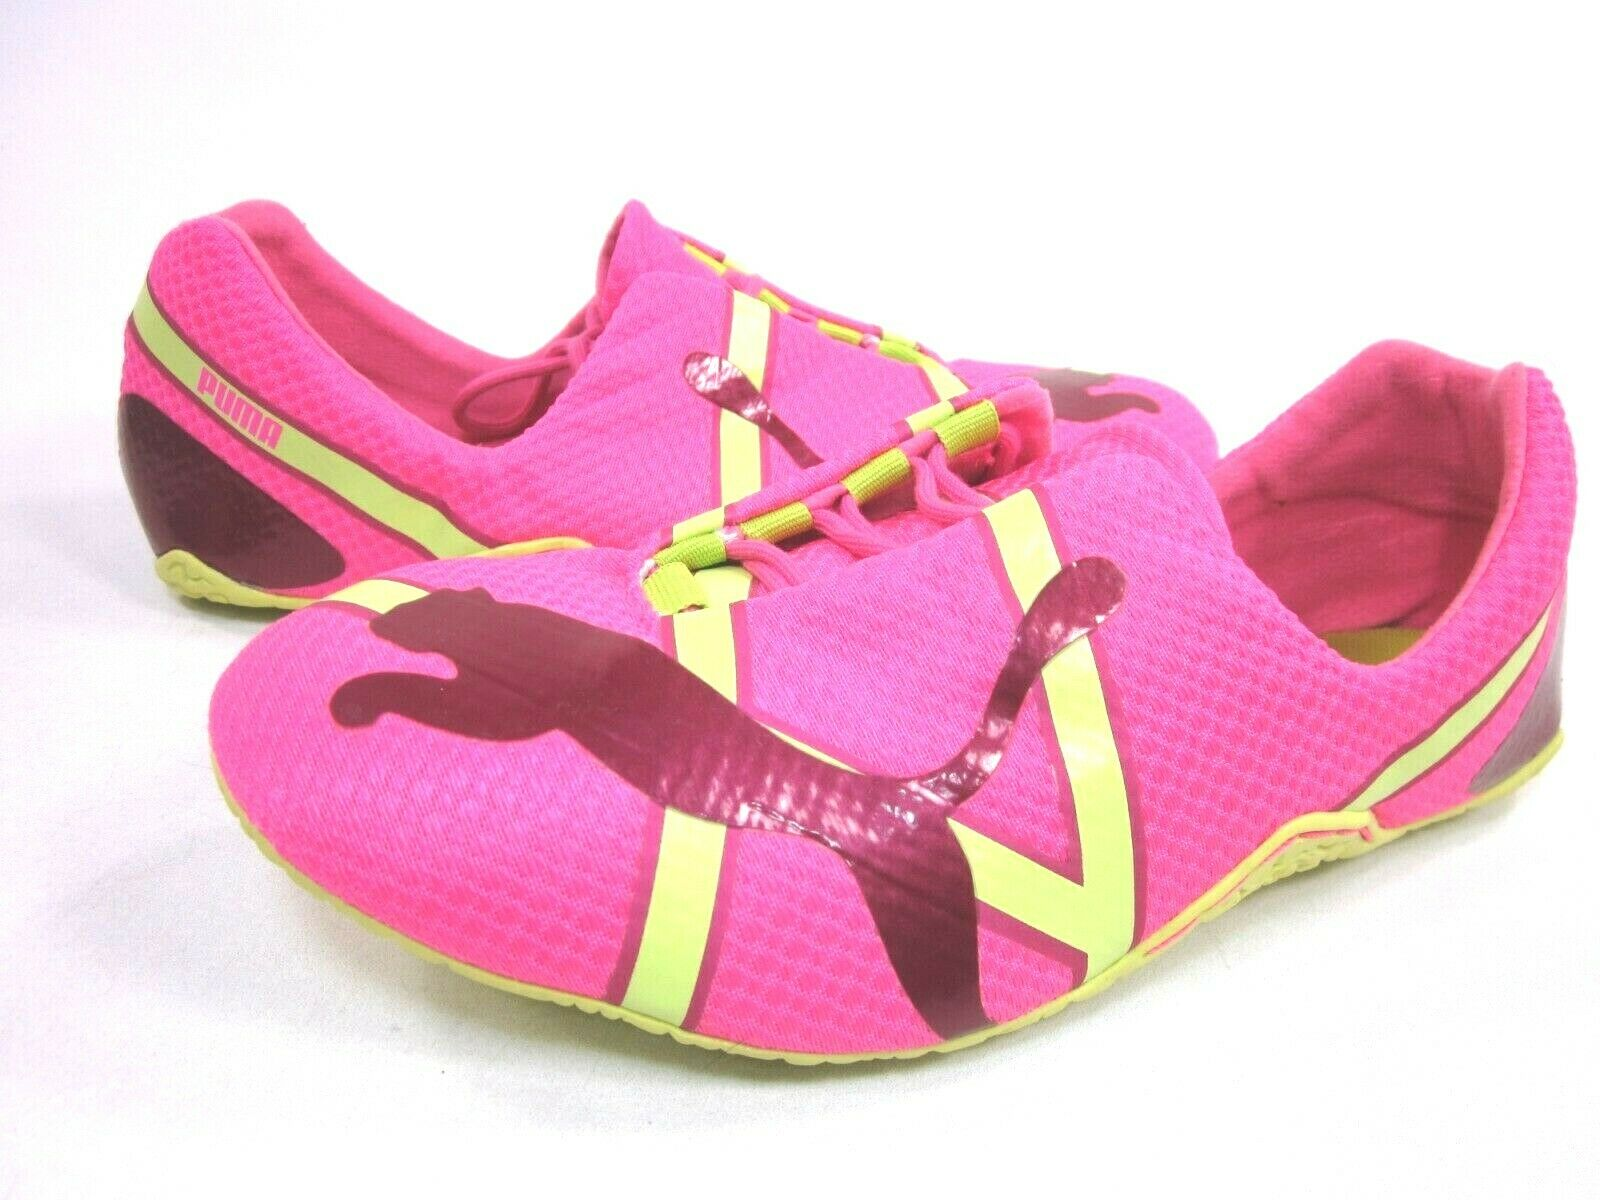 PUMA WOMEN'S ANAIDA METALLIC LACE UP SNEAKERS.FLUORESCENT PINK LIME,US SZ 6.5